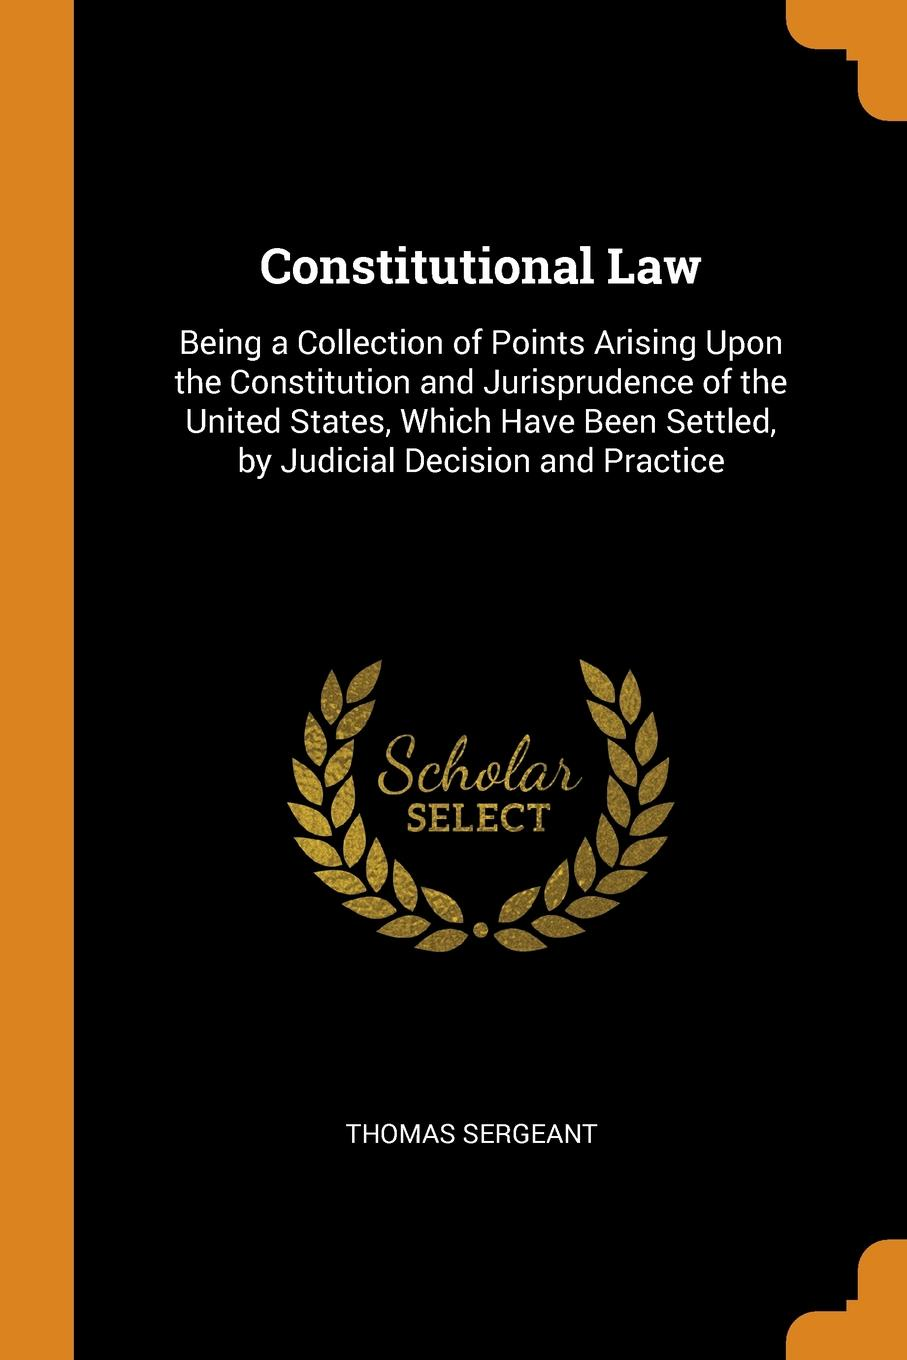 Thomas Sergeant. Constitutional Law. Being a Collection of Points Arising Upon the Constitution and Jurisprudence of the United States, Which Have Been Settled, by Judicial Decision and Practice